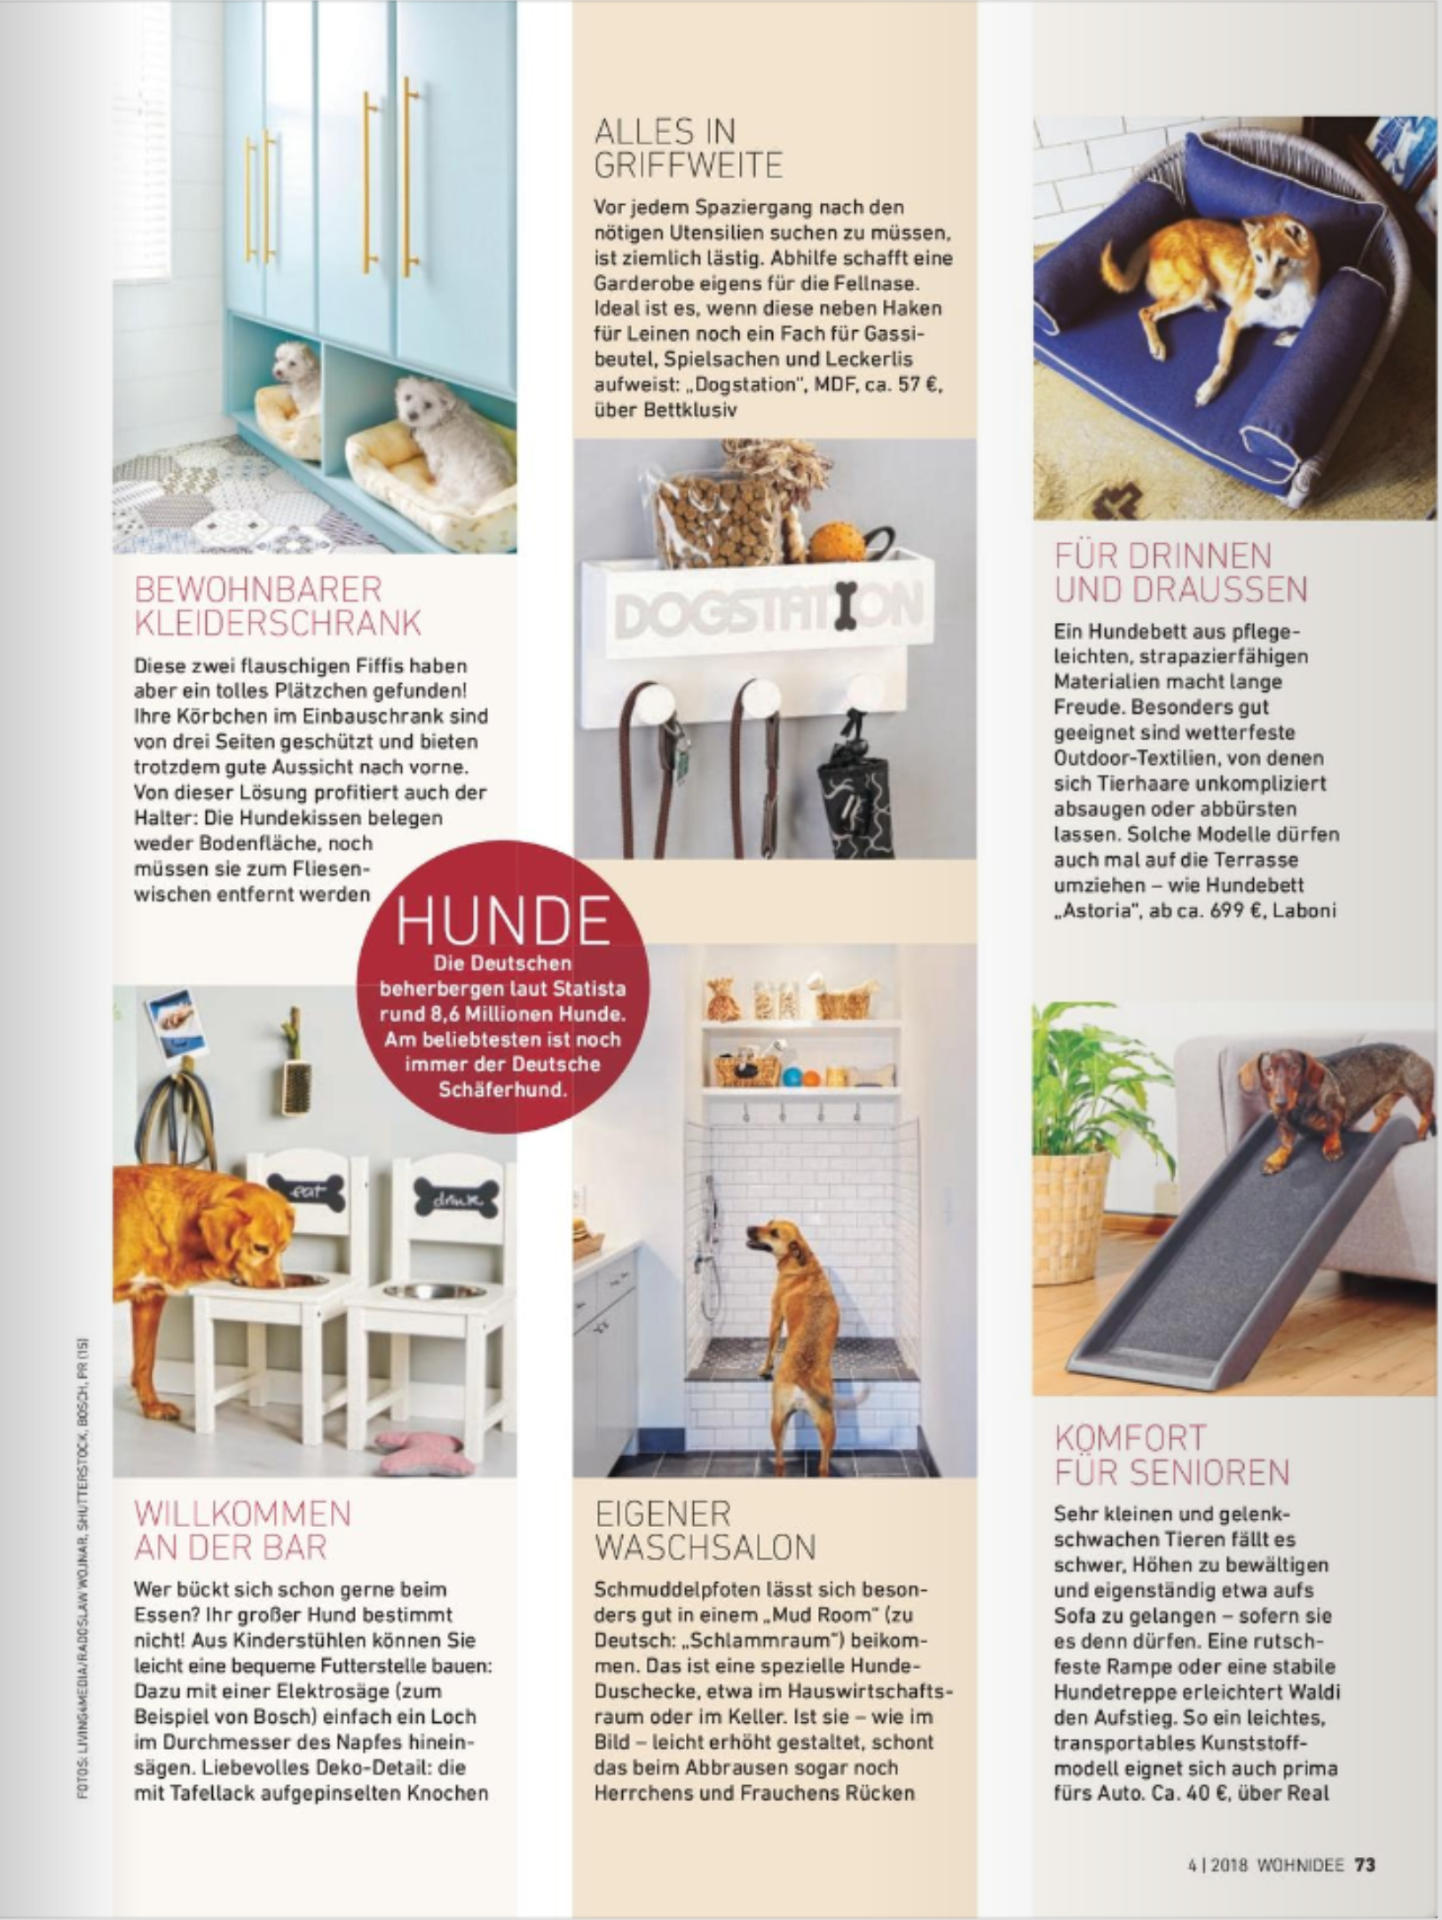 Wohnidee 04 2018 Laboni Design Pure Joy For Dogs And Owners